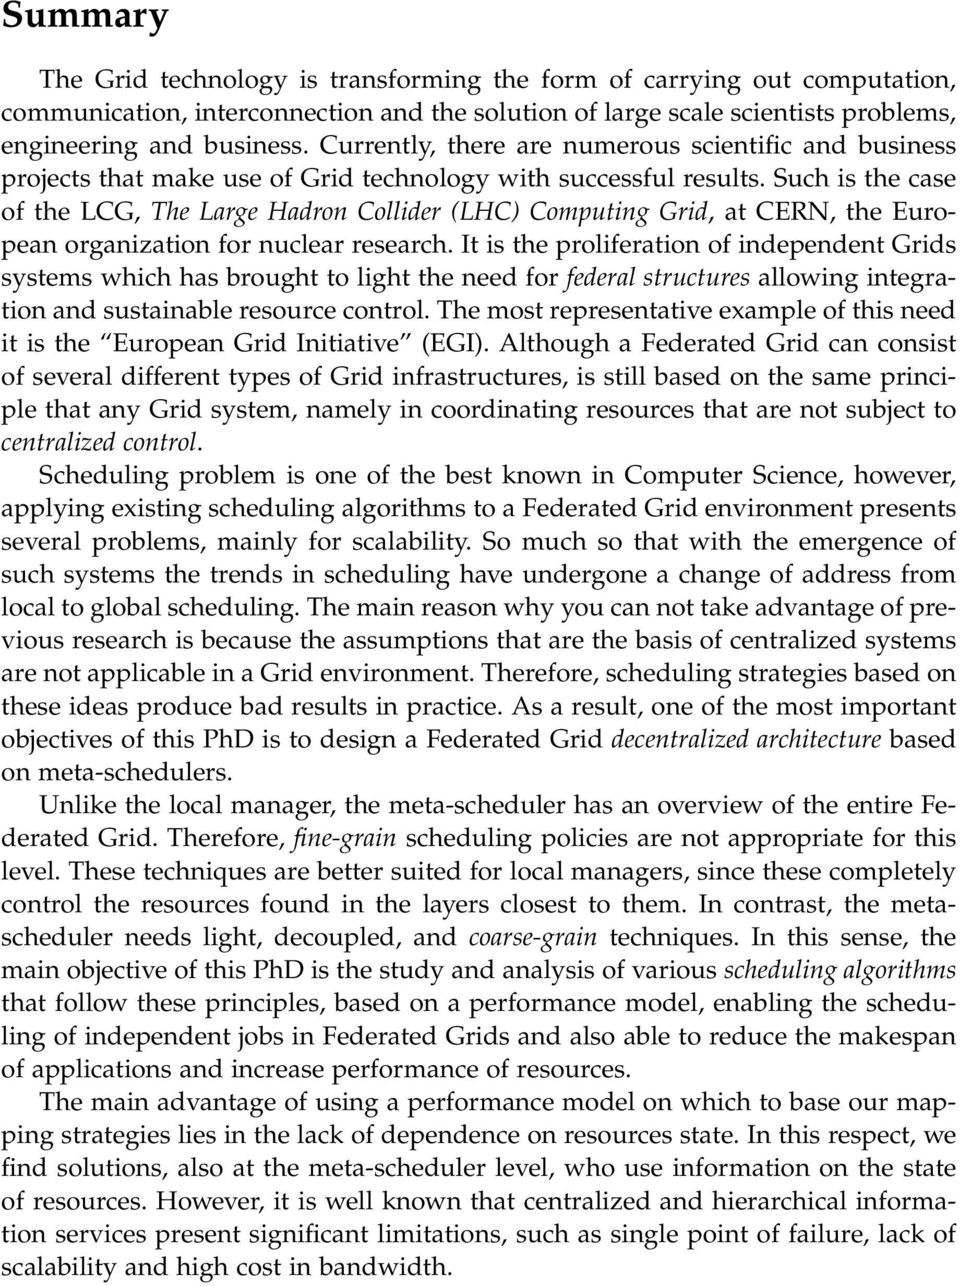 Such is the case of the LCG, The Large Hadron Collider (LHC) Computing Grid, at CERN, the European organization for nuclear research.